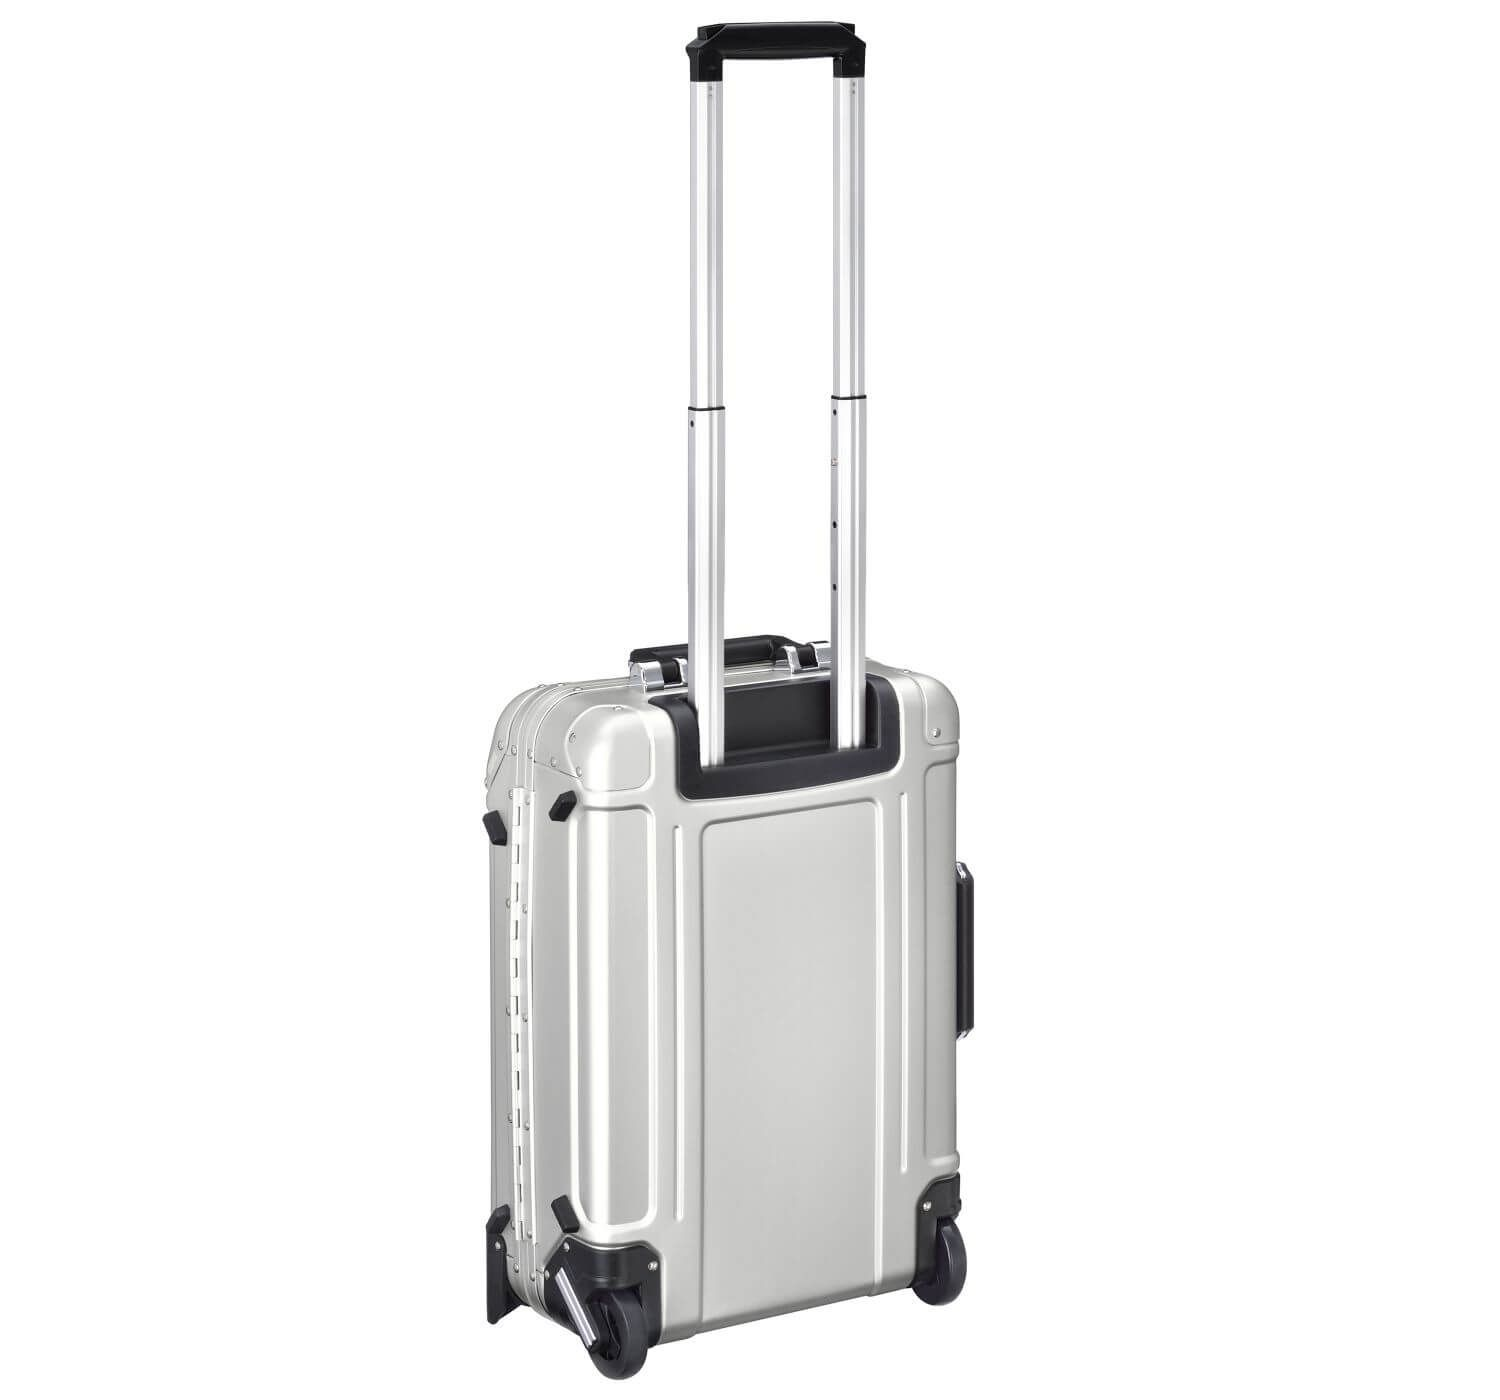 Geo Aluminum 2.0 - Carry-on 2-Wheel Travel Case - фото 2